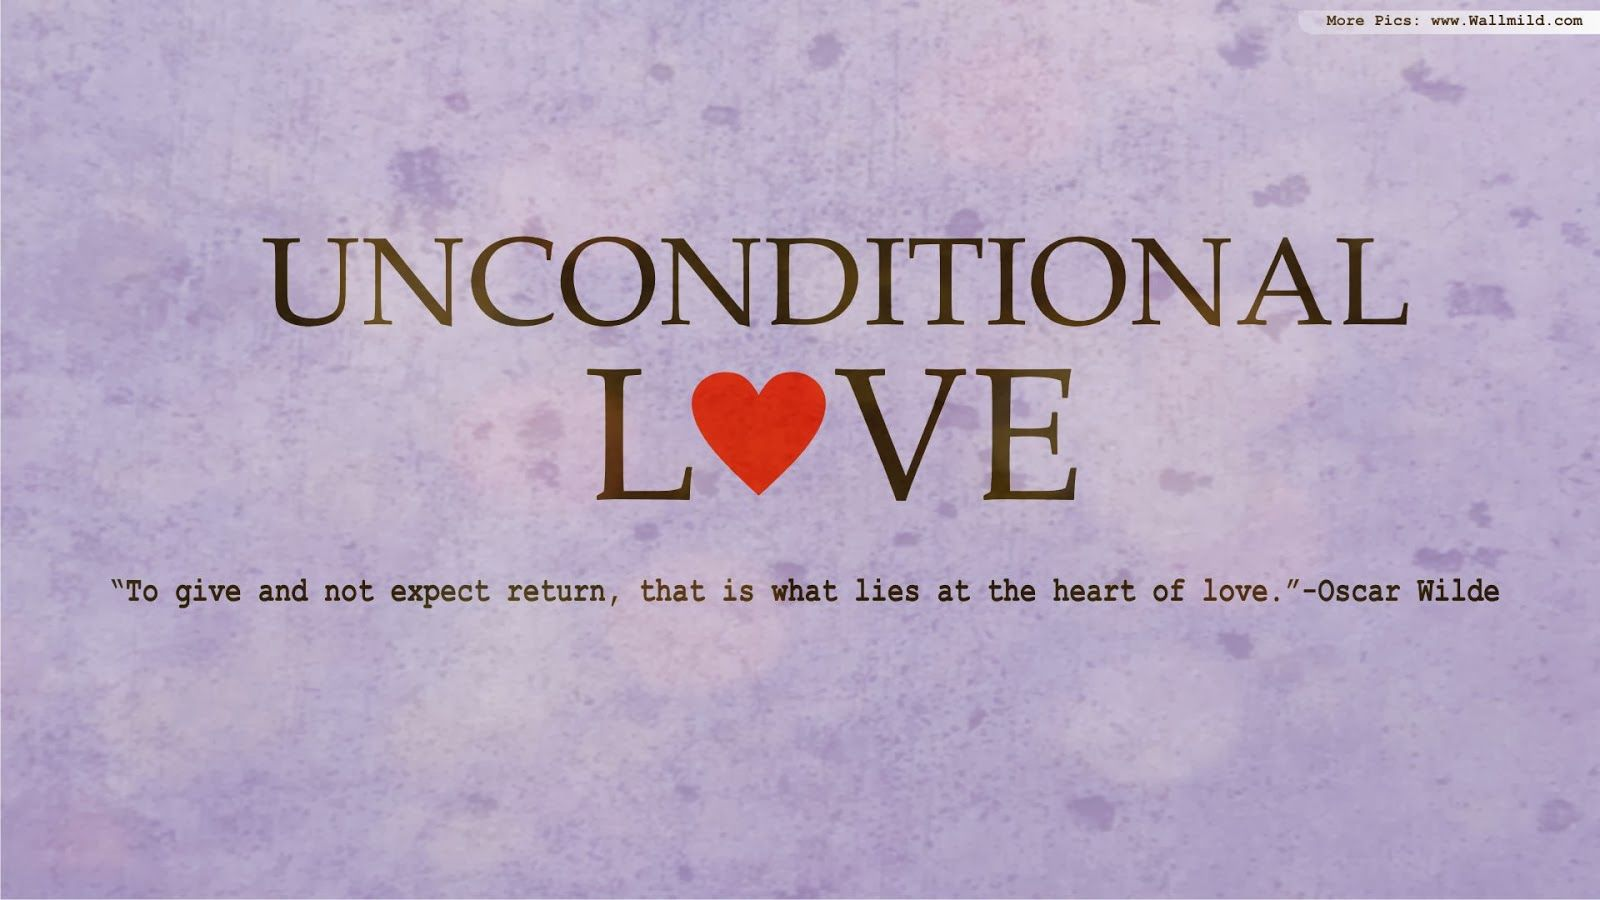 Unconditional Love Family Love Quotes Unconditional Love Quotes Most Romantic Quotes